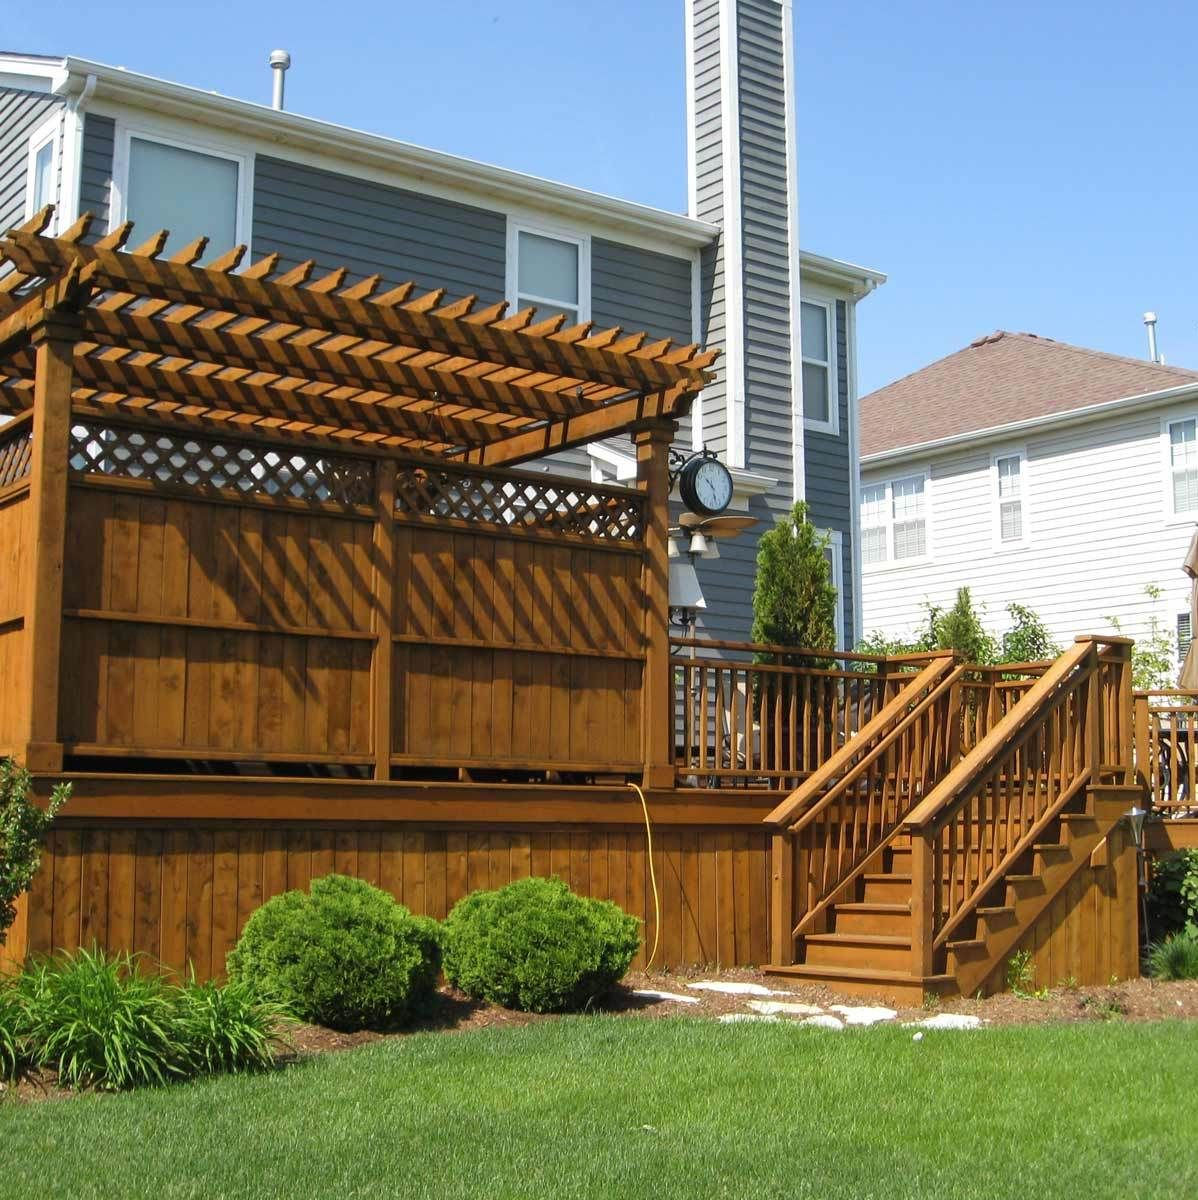 how to build a small pergola on a deck